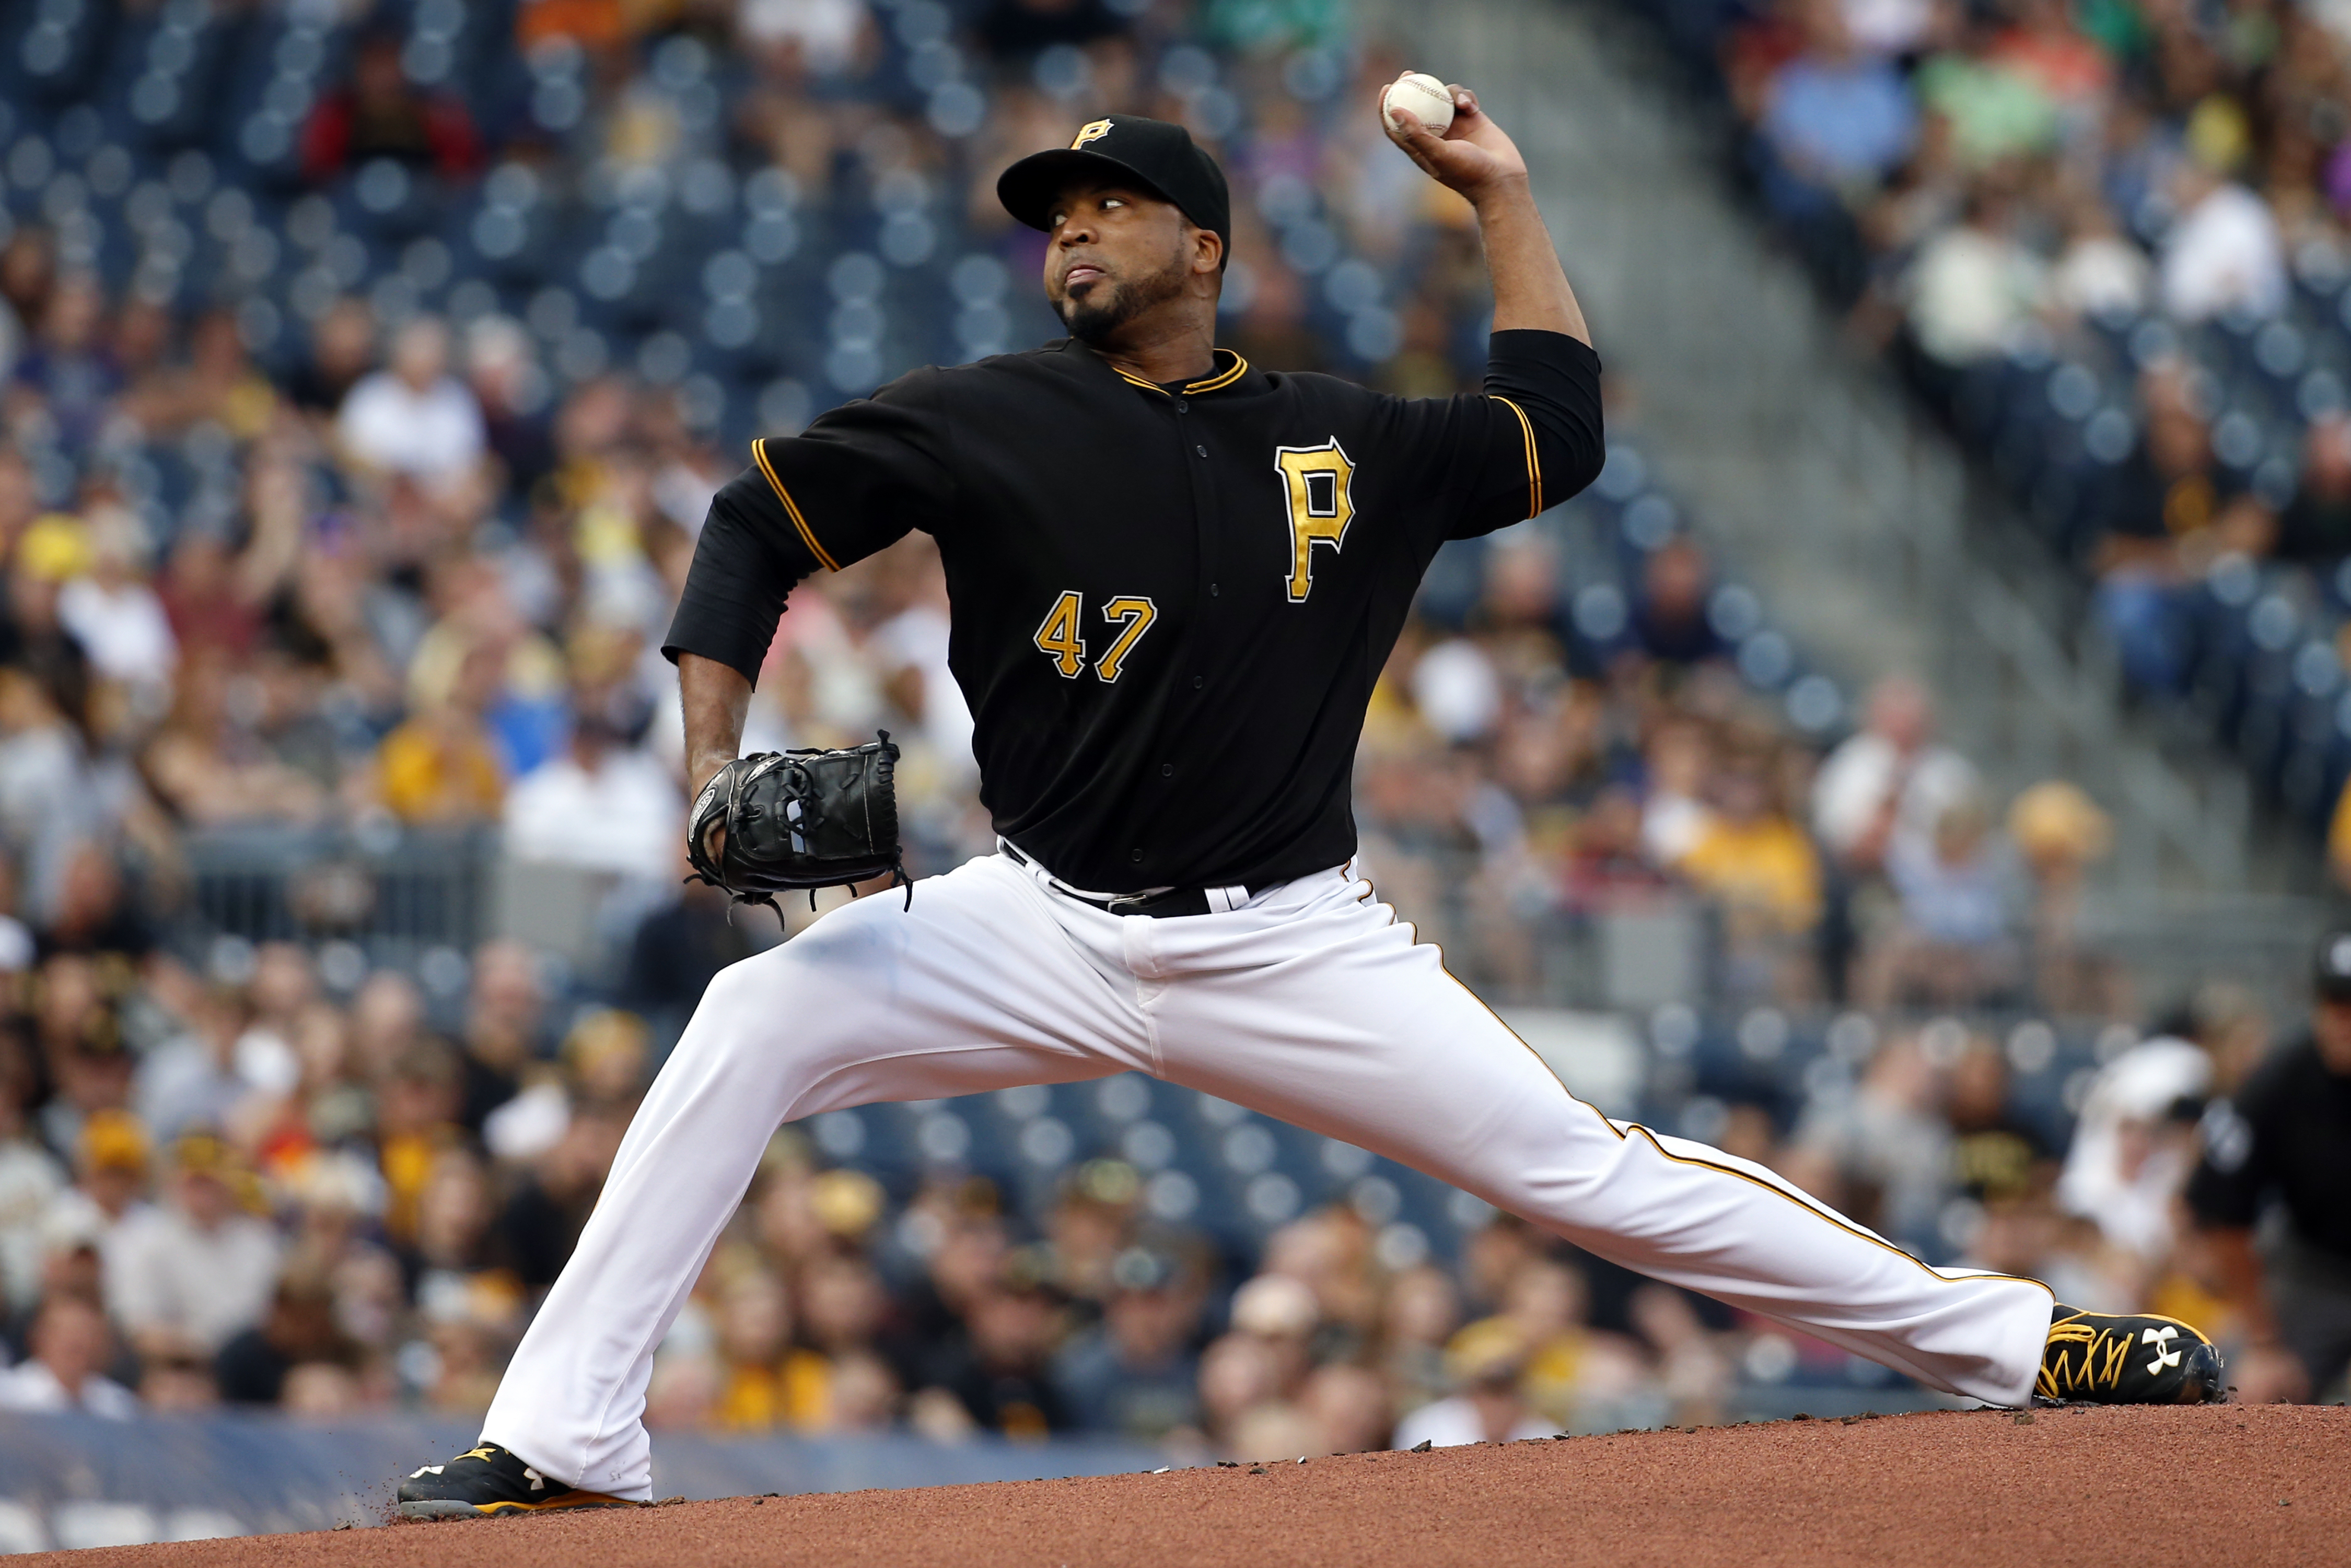 Pittsburgh Pirates starting pitcher Francisco Liriano (47) delivers in the first inning of a baseball game against the Milwaukee Brewers in Pittsburgh, Tuesday, June 9, 2015. (AP Photo/Gene J. Puskar)